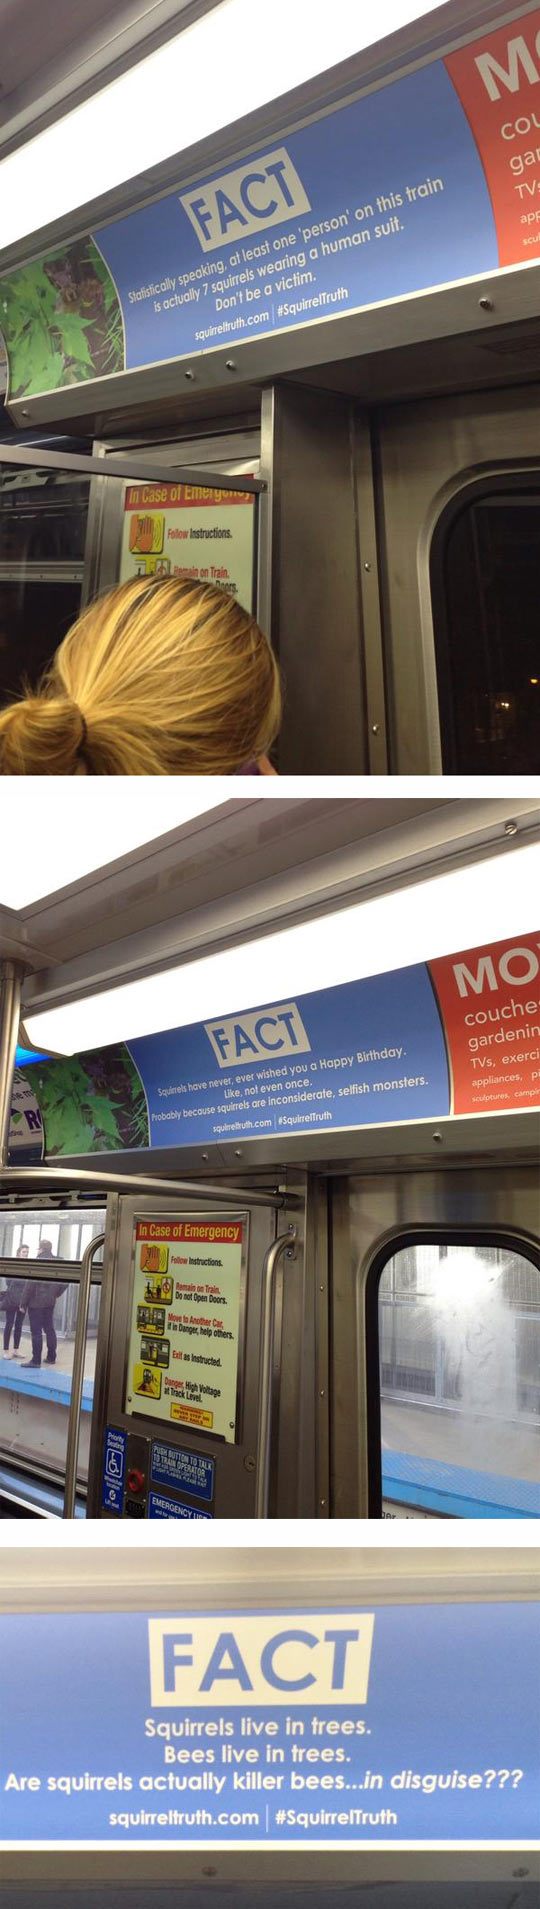 cool-squirrel-fact-subway-jokes